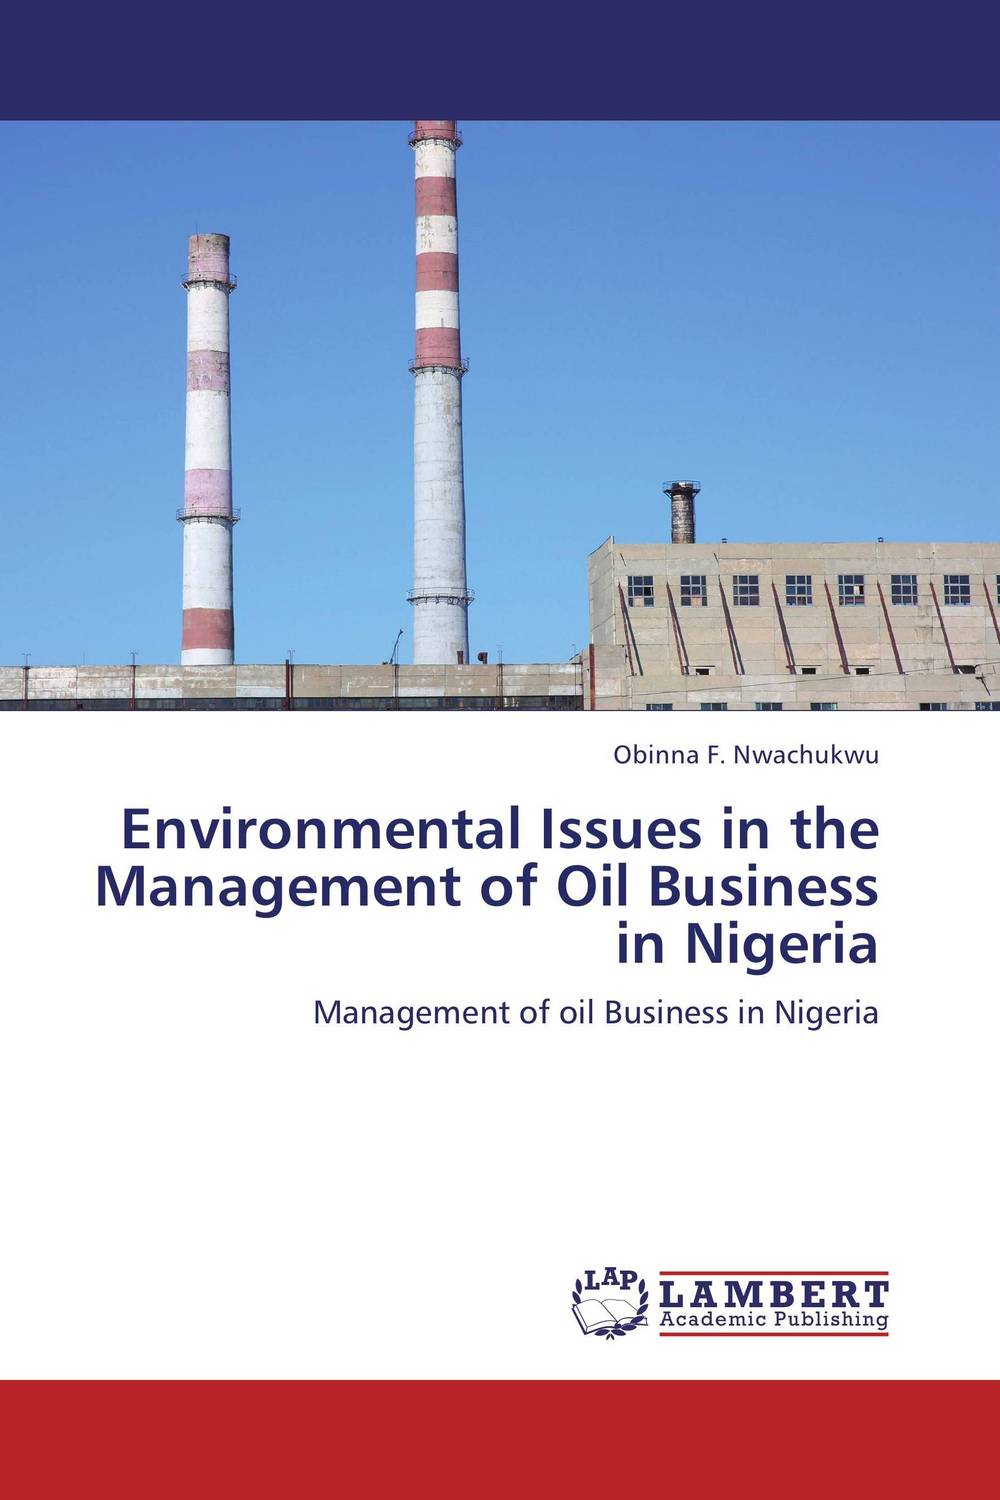 Environmental Issues in the Management of Oil Business in Nigeria dearomatization of crude oil